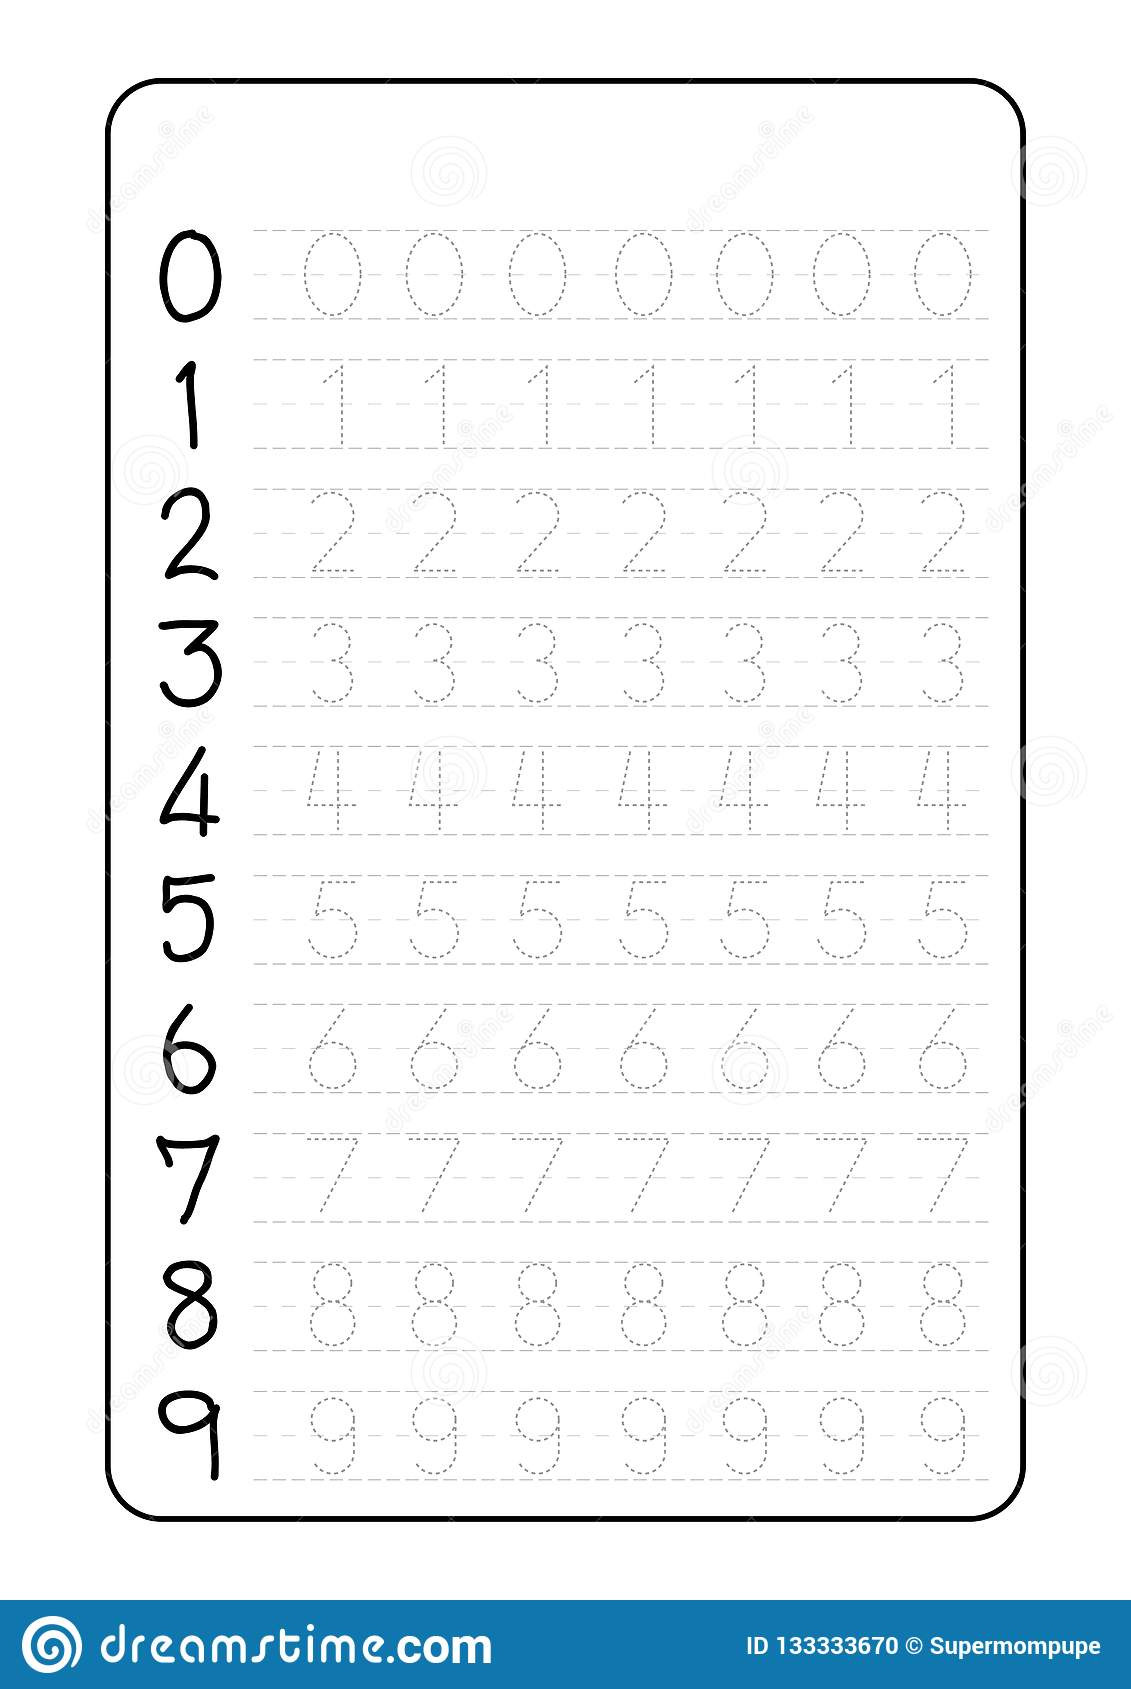 alphabet letters tracing worksheet number formation activity sheets kindergarten kids paper ready to with